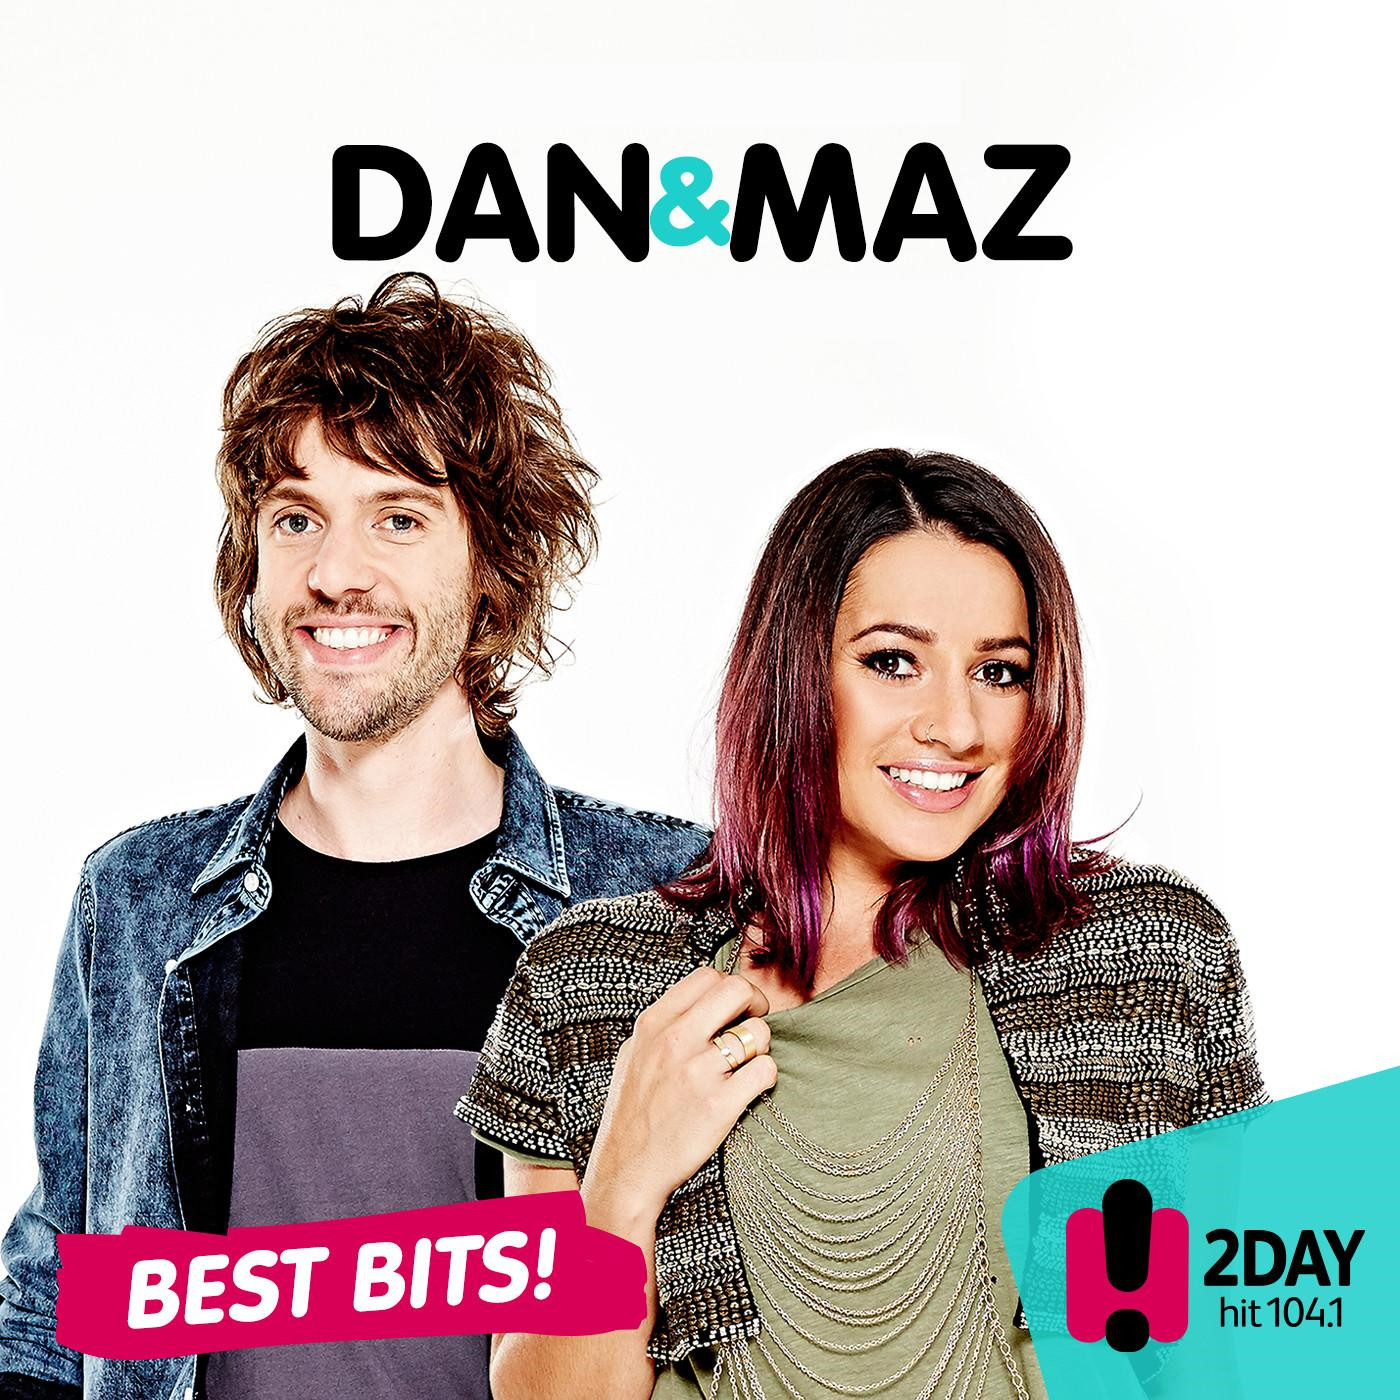 Dan and Maz: Best Bits